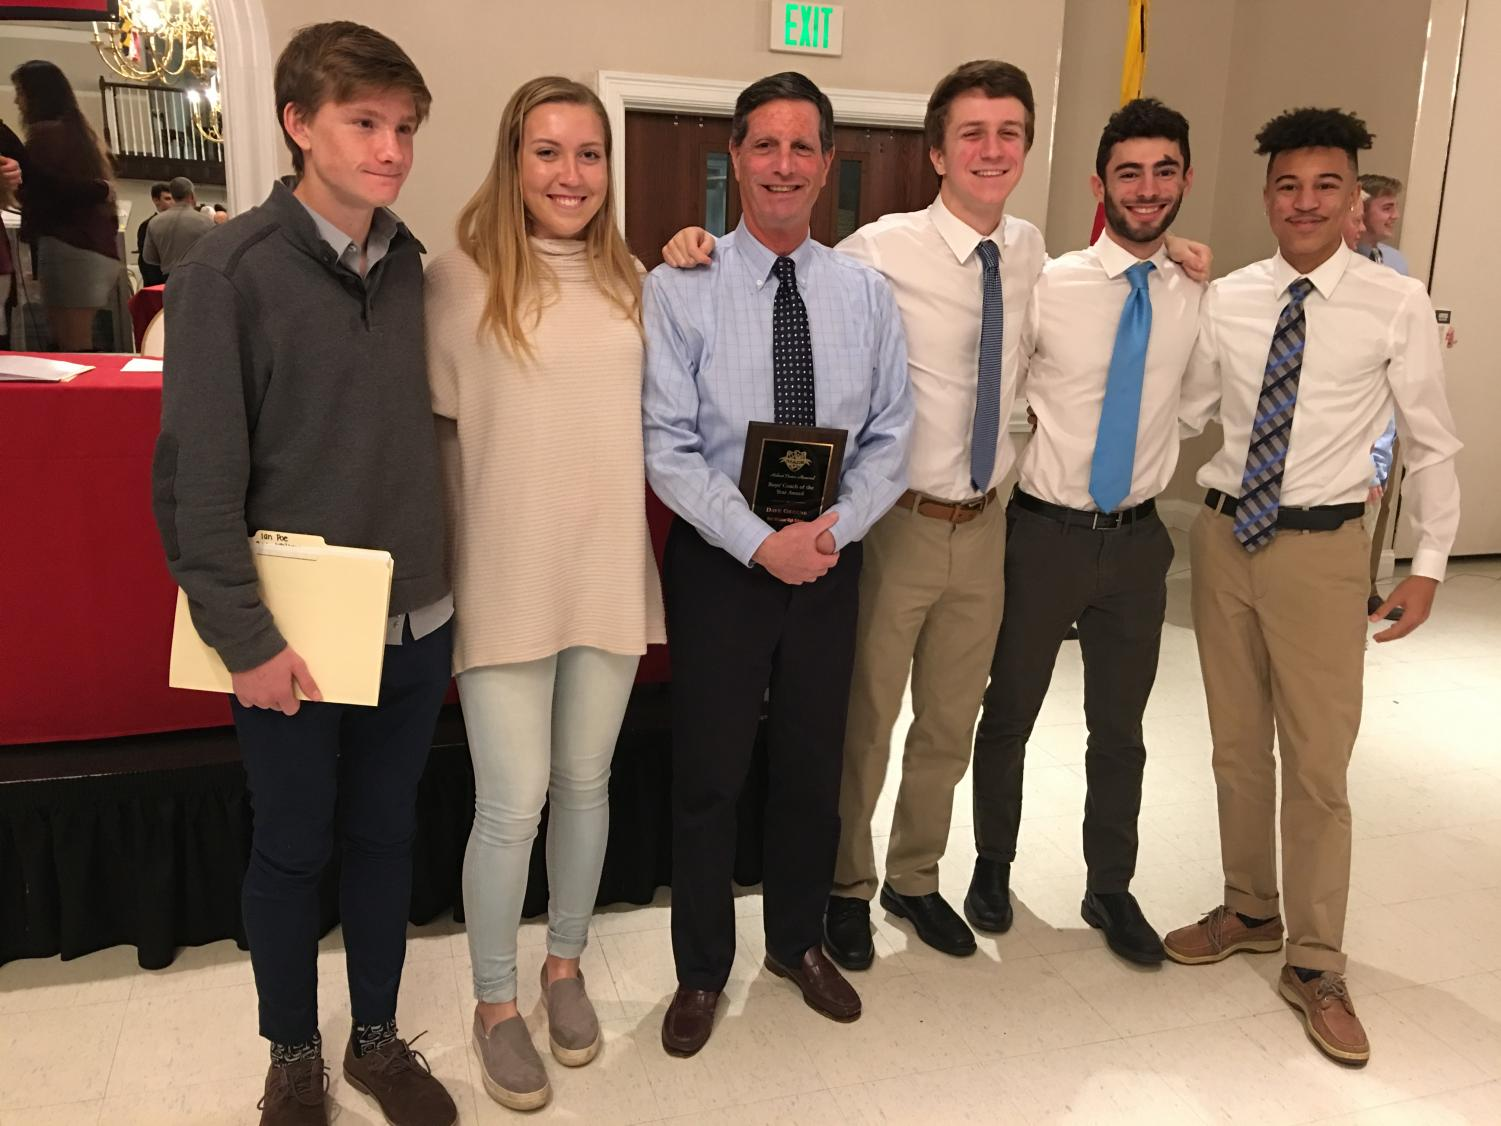 Boys soccer coach Dave Greene takes a picture with four of his players and girls soccer captain Morgan Wiese at the MACS All State Banquet. Greene was honored as the MACS Coach of the Year for the first time in his 40 year career.